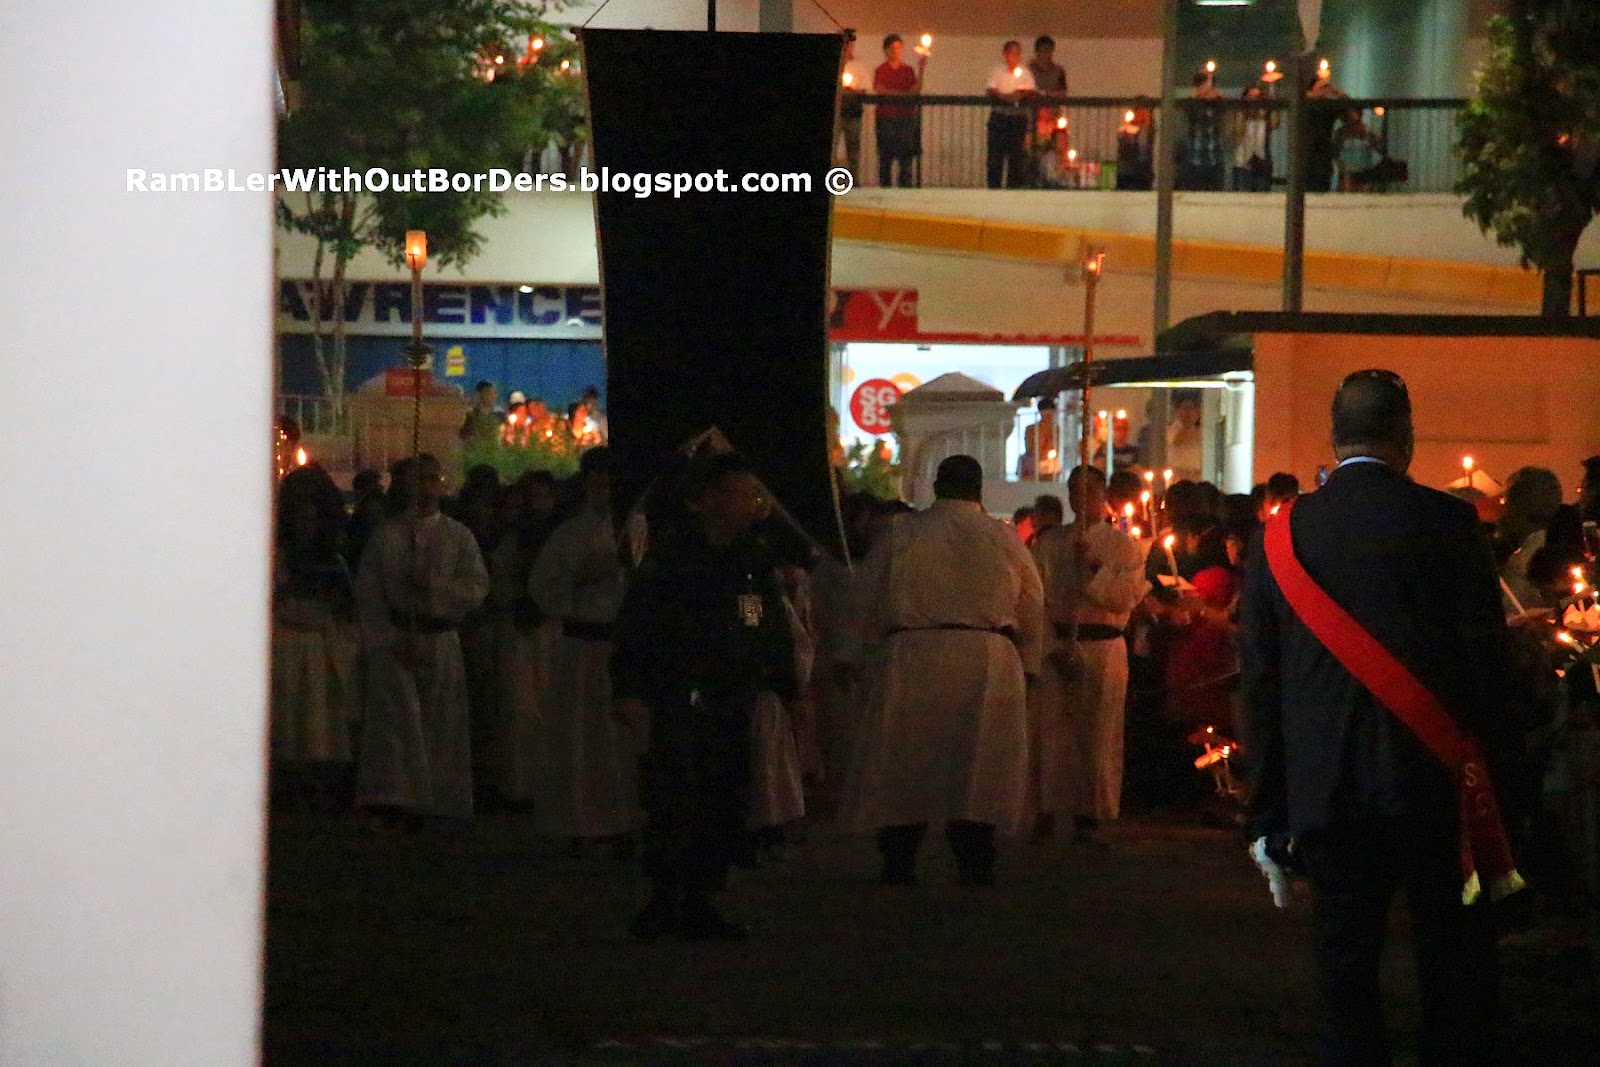 Good Friday Candle-Light Procession, St Joseph's Church, Victoria St, Singapore